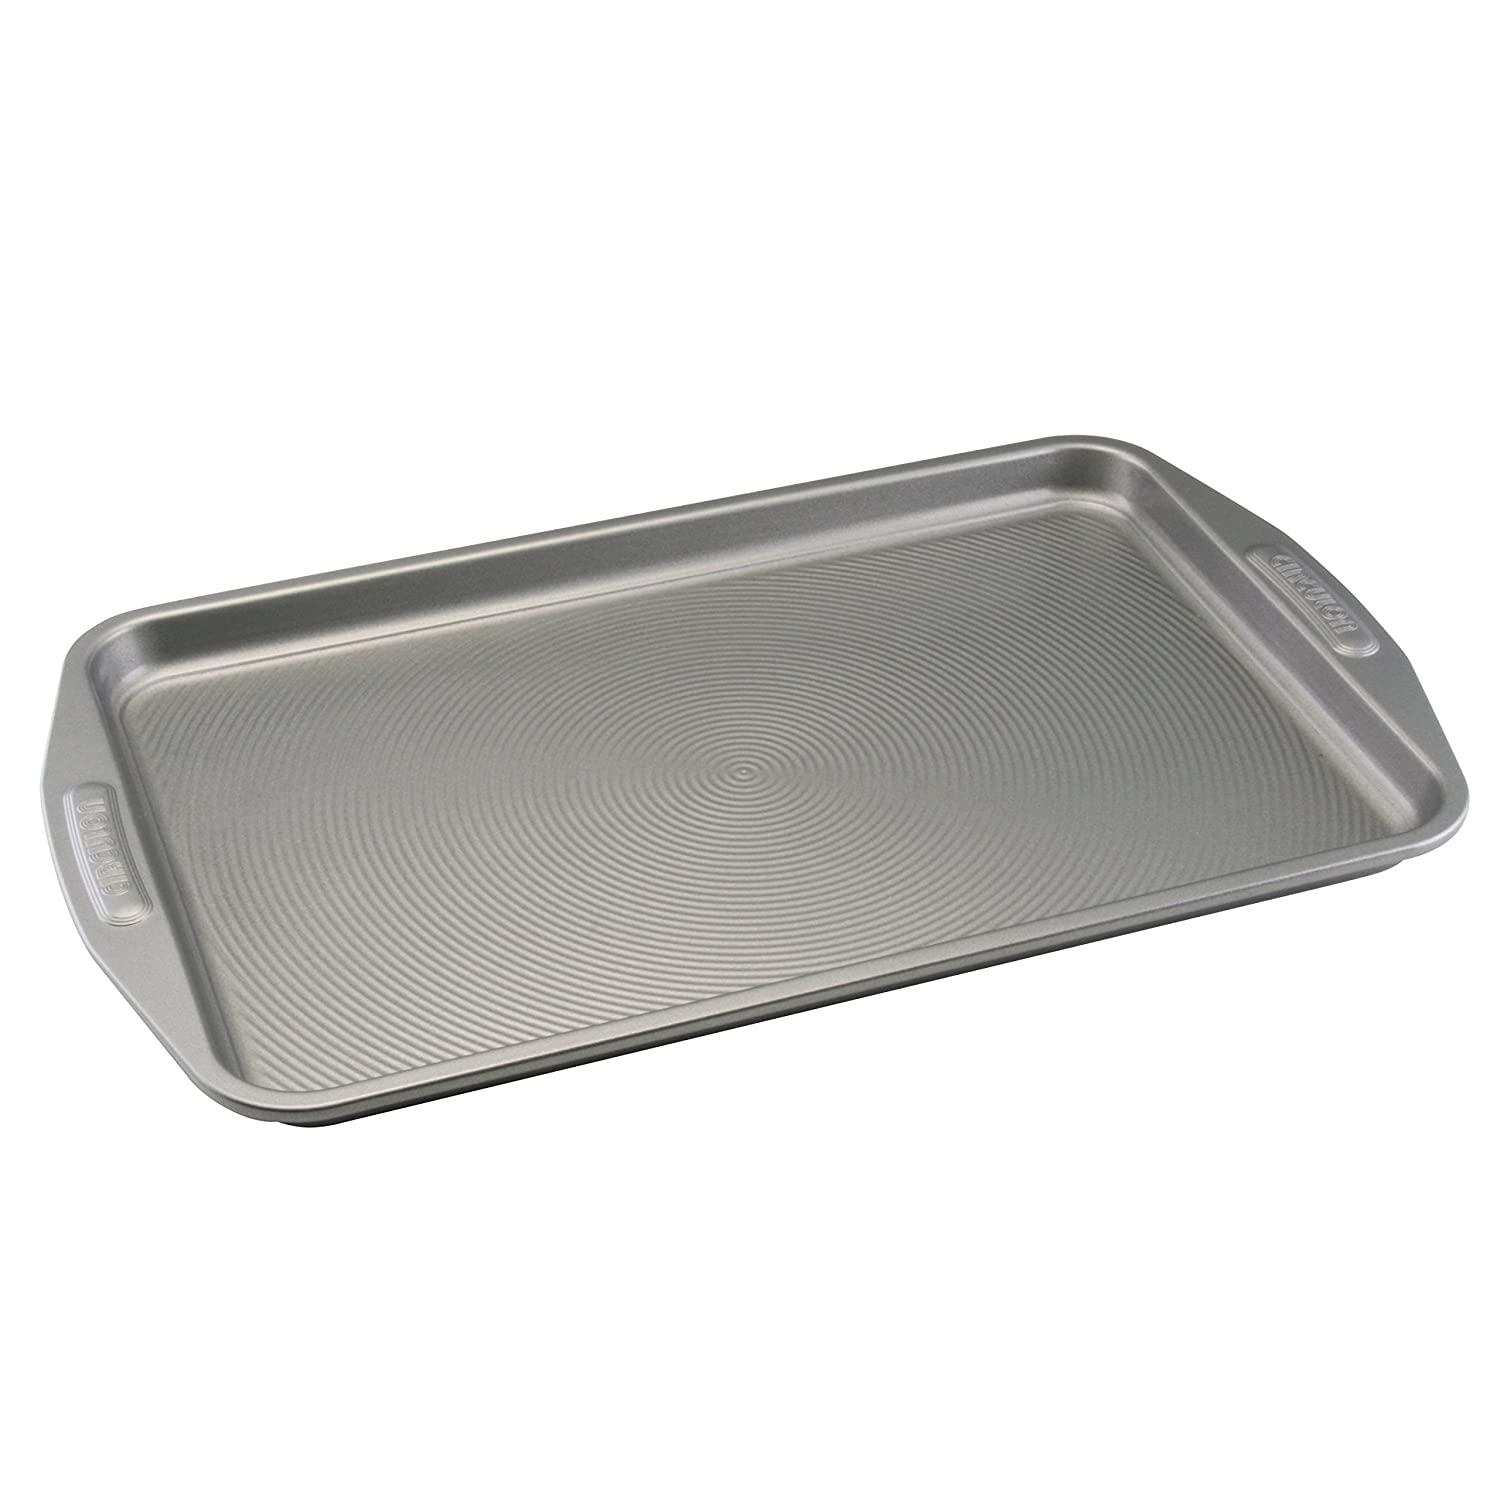 Circulon Nonstick Bakeware 11-Inch x 17-Inch Cookie Pan, Gray 51132